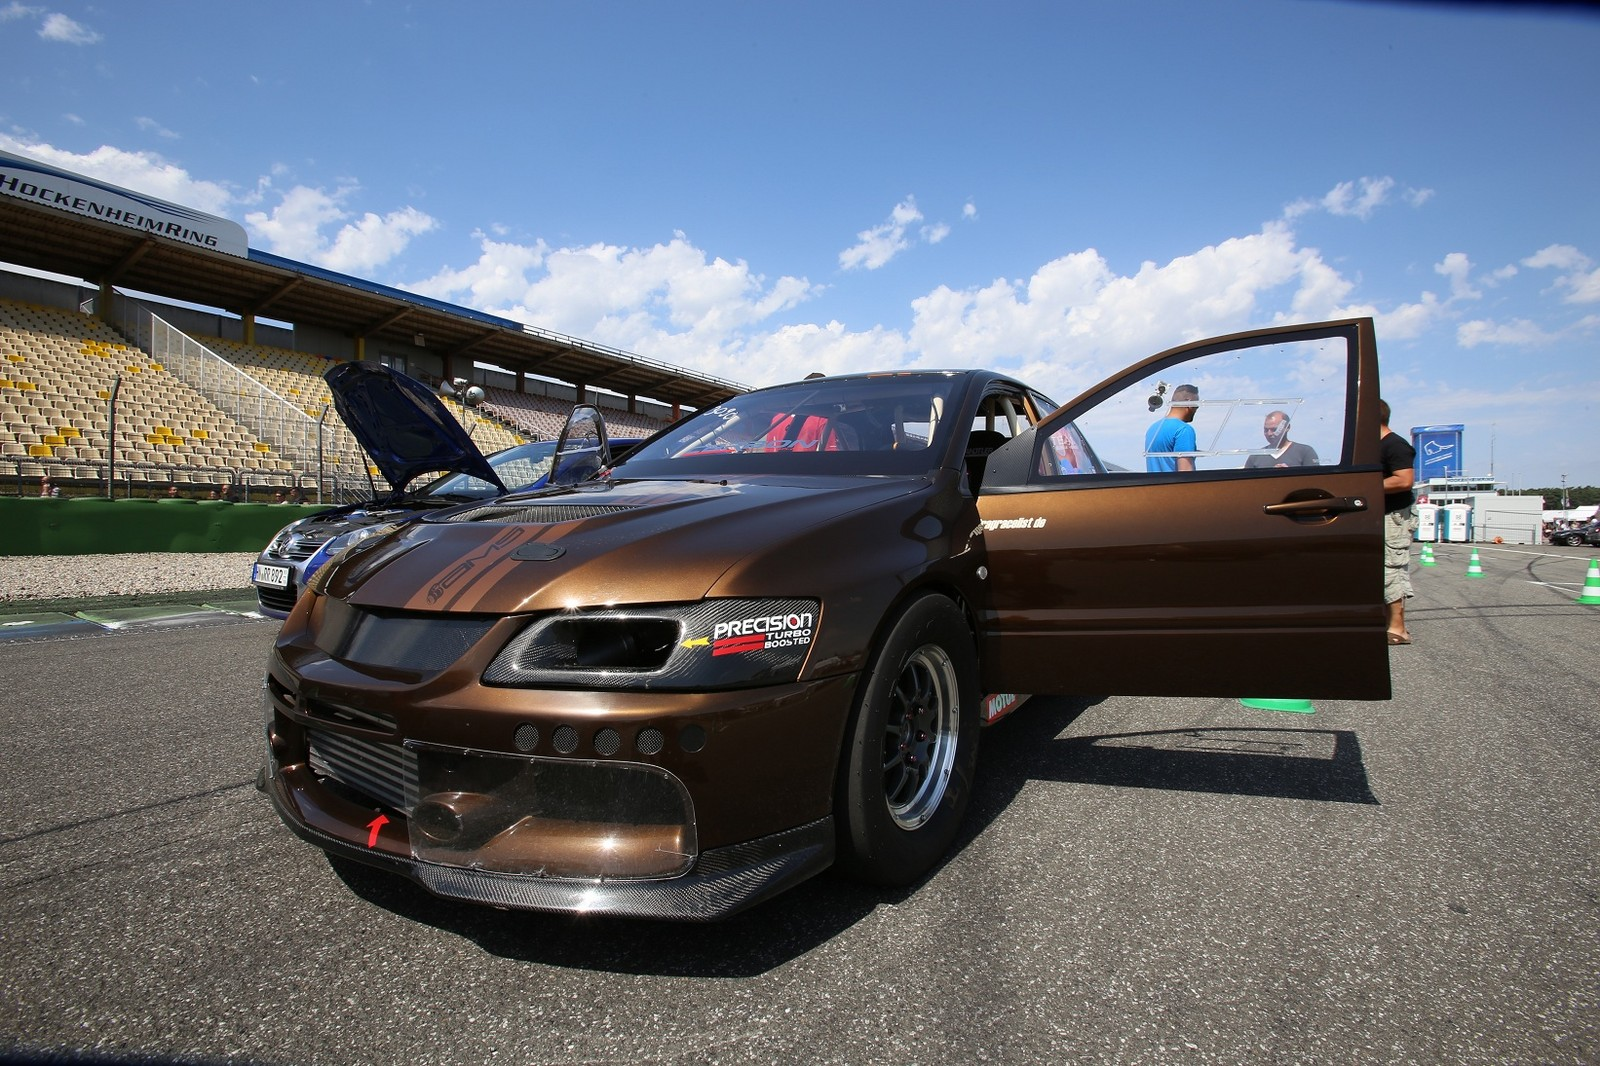 2007 mitsubishi lancer evo ams stm drag evo ix 1 4 mile drag racing timeslip specs 0 60. Black Bedroom Furniture Sets. Home Design Ideas